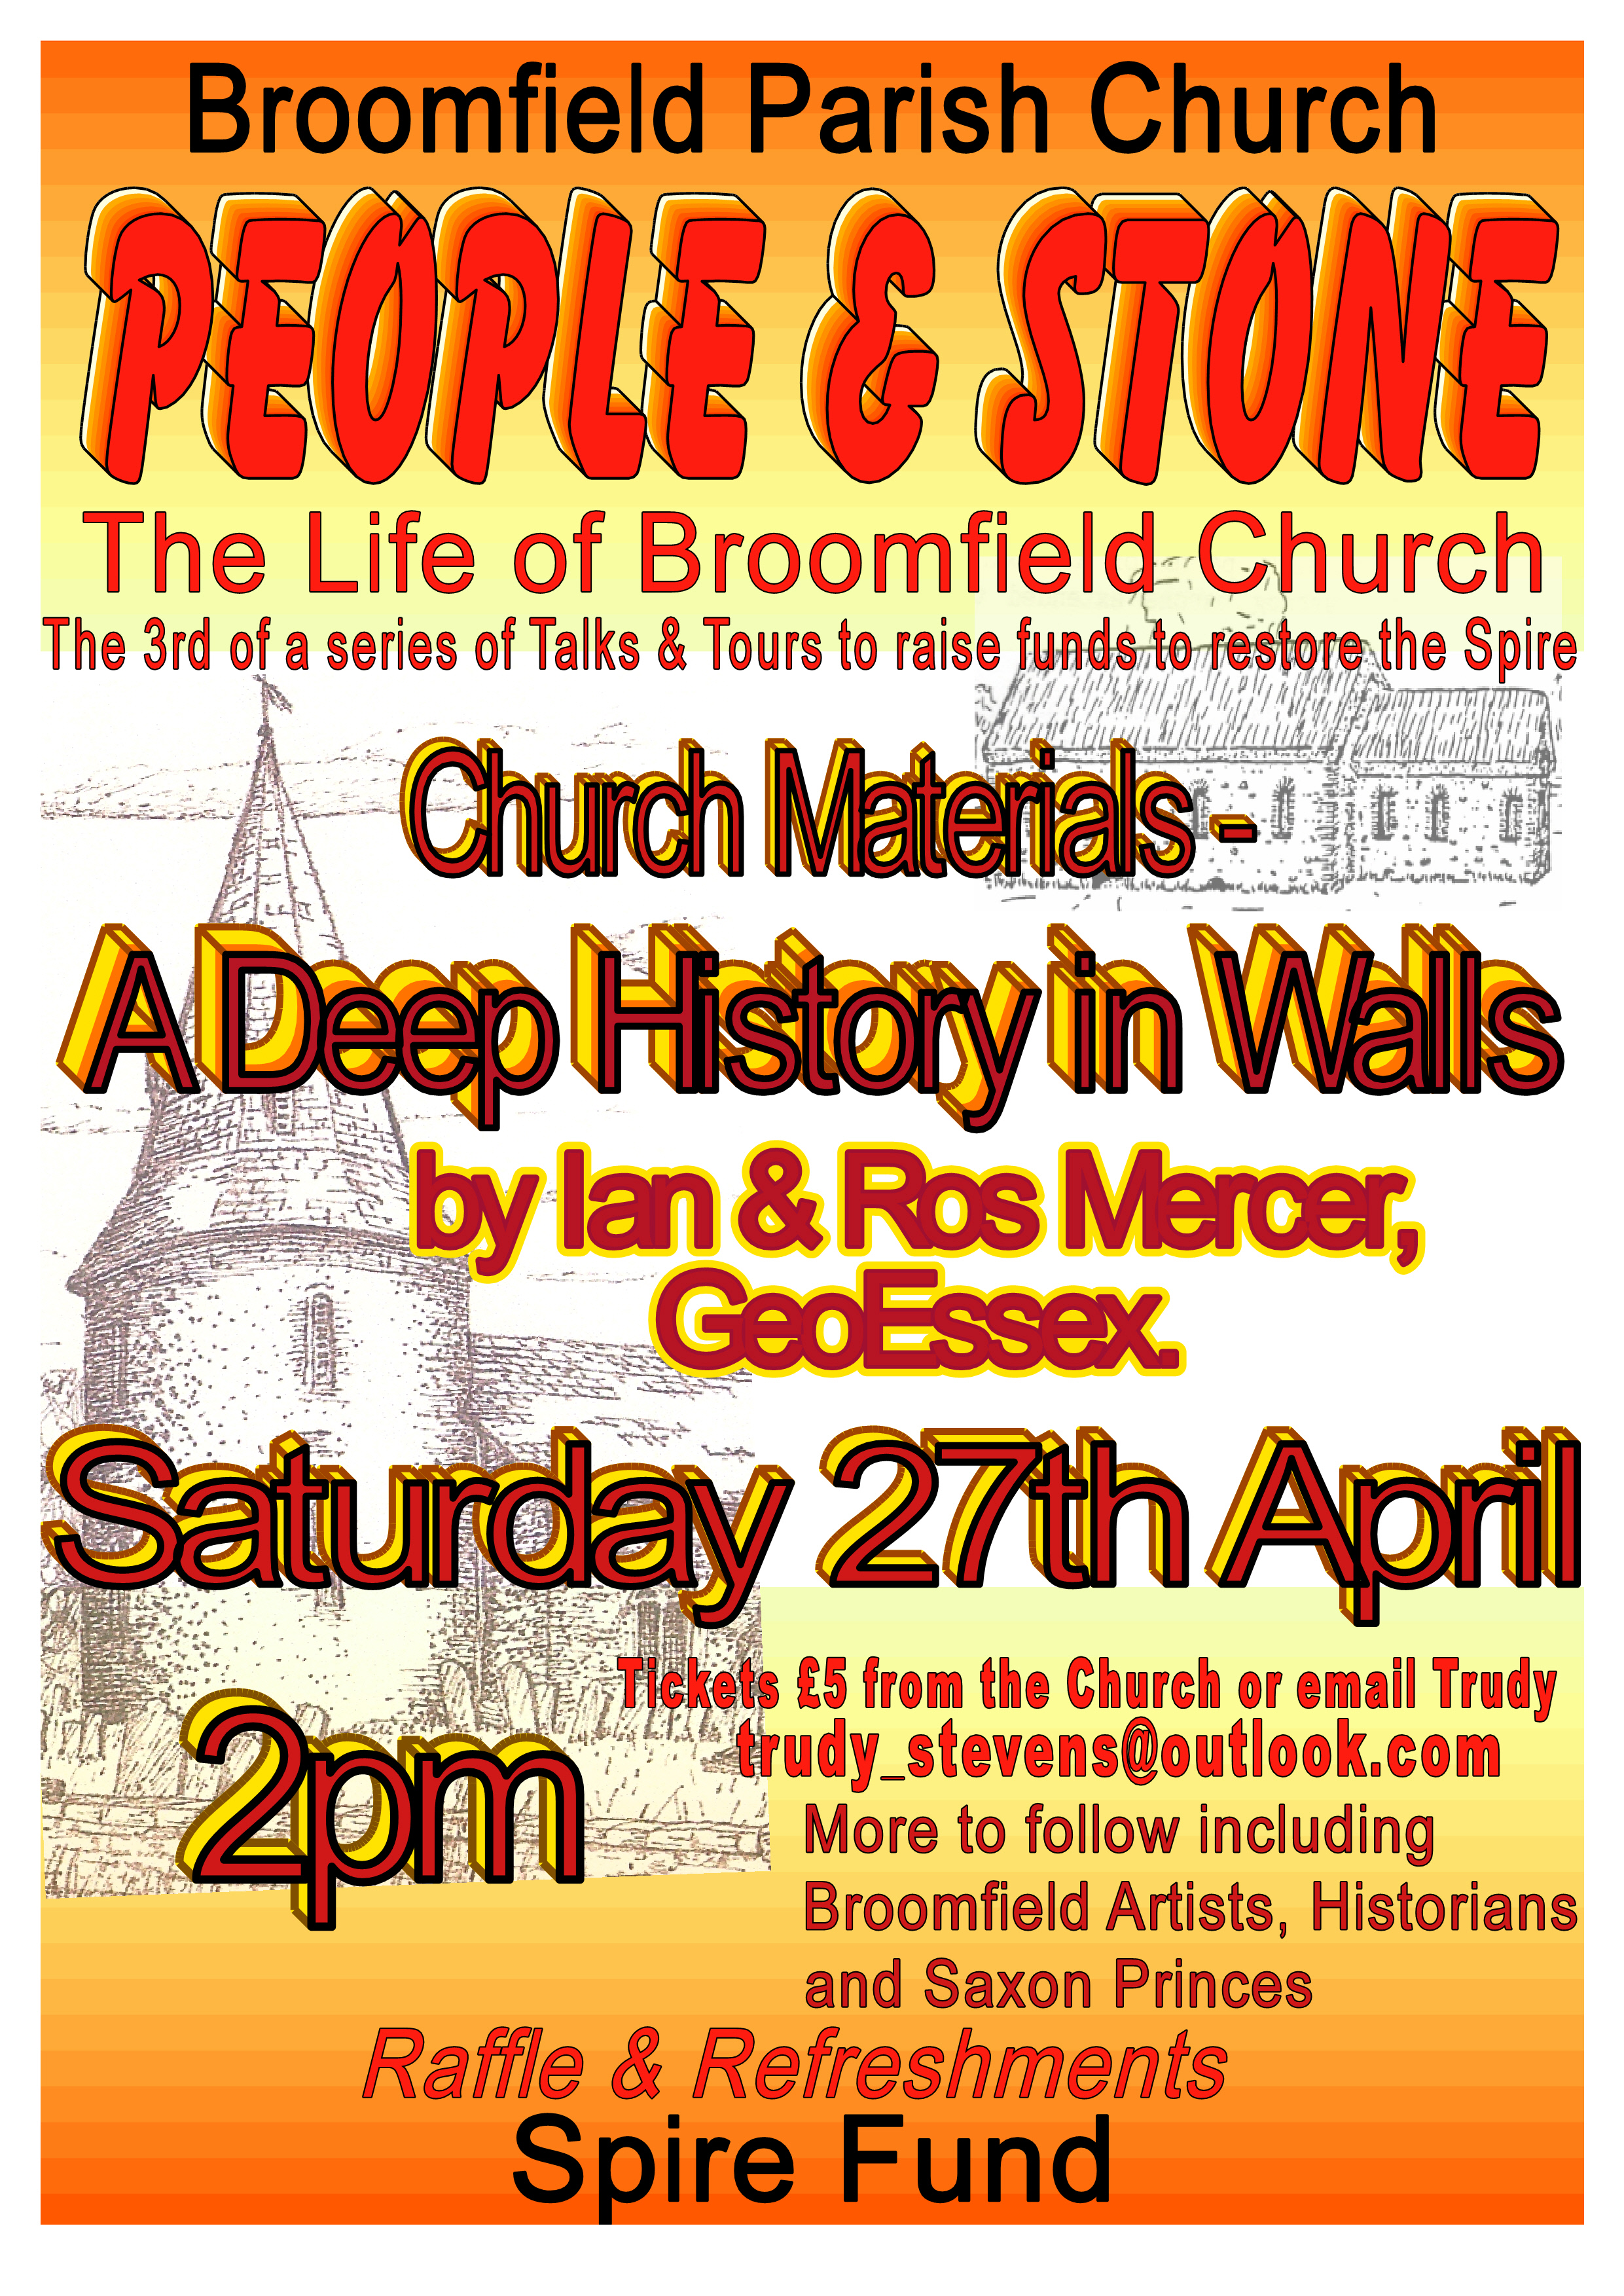 People & Stone Talk - The Life of Broomfield Church